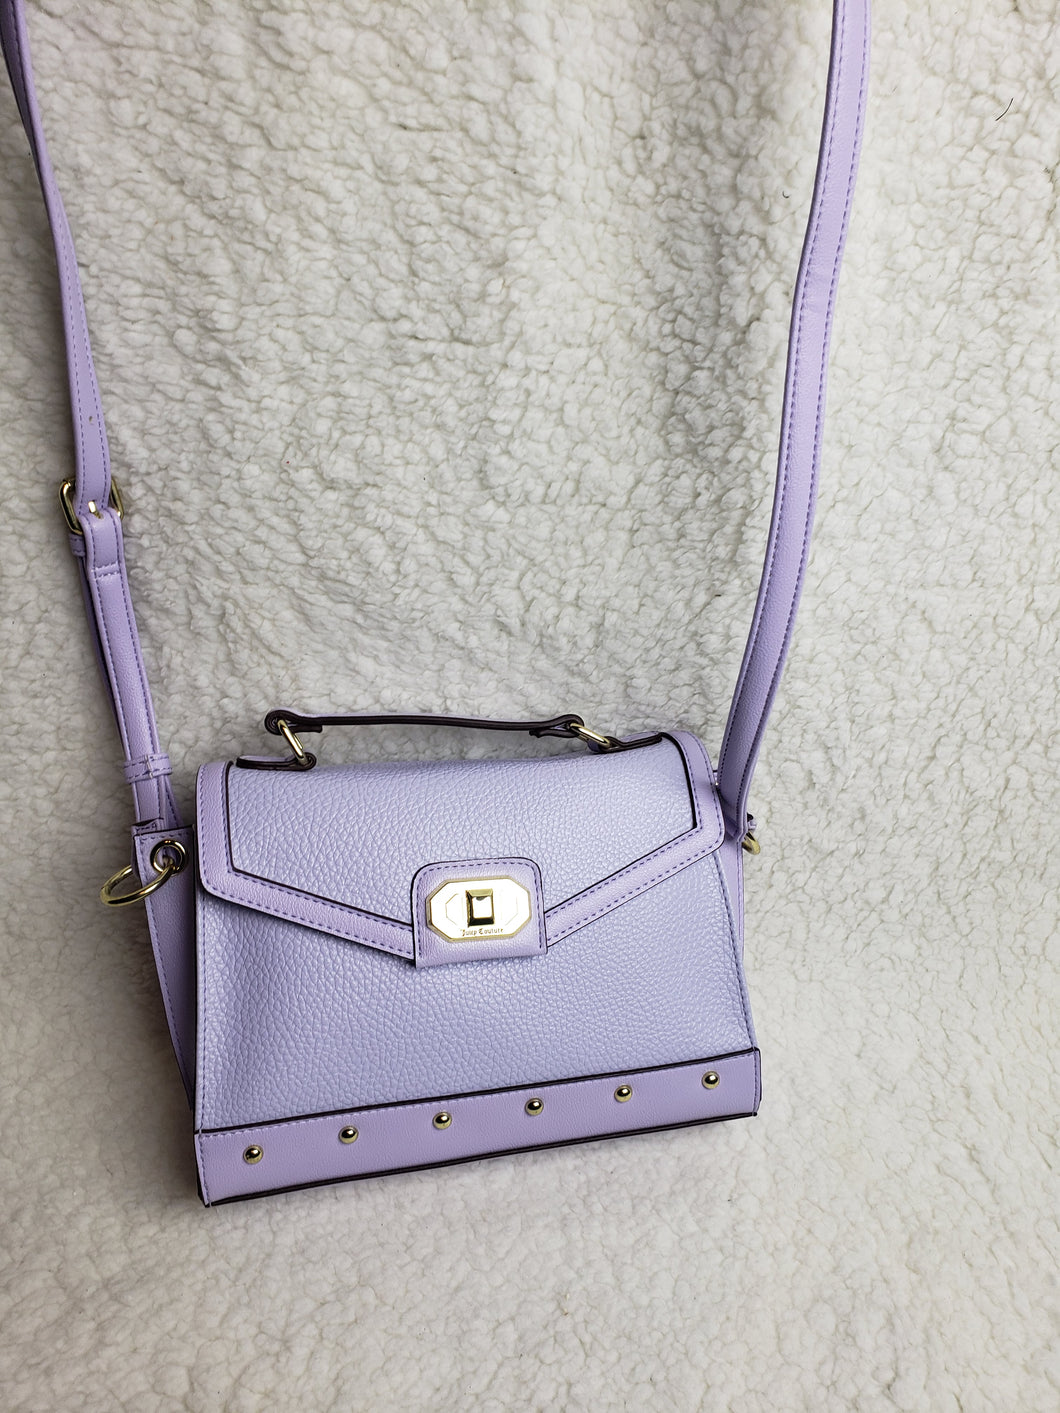 Juicy Couture lilac pocketbook